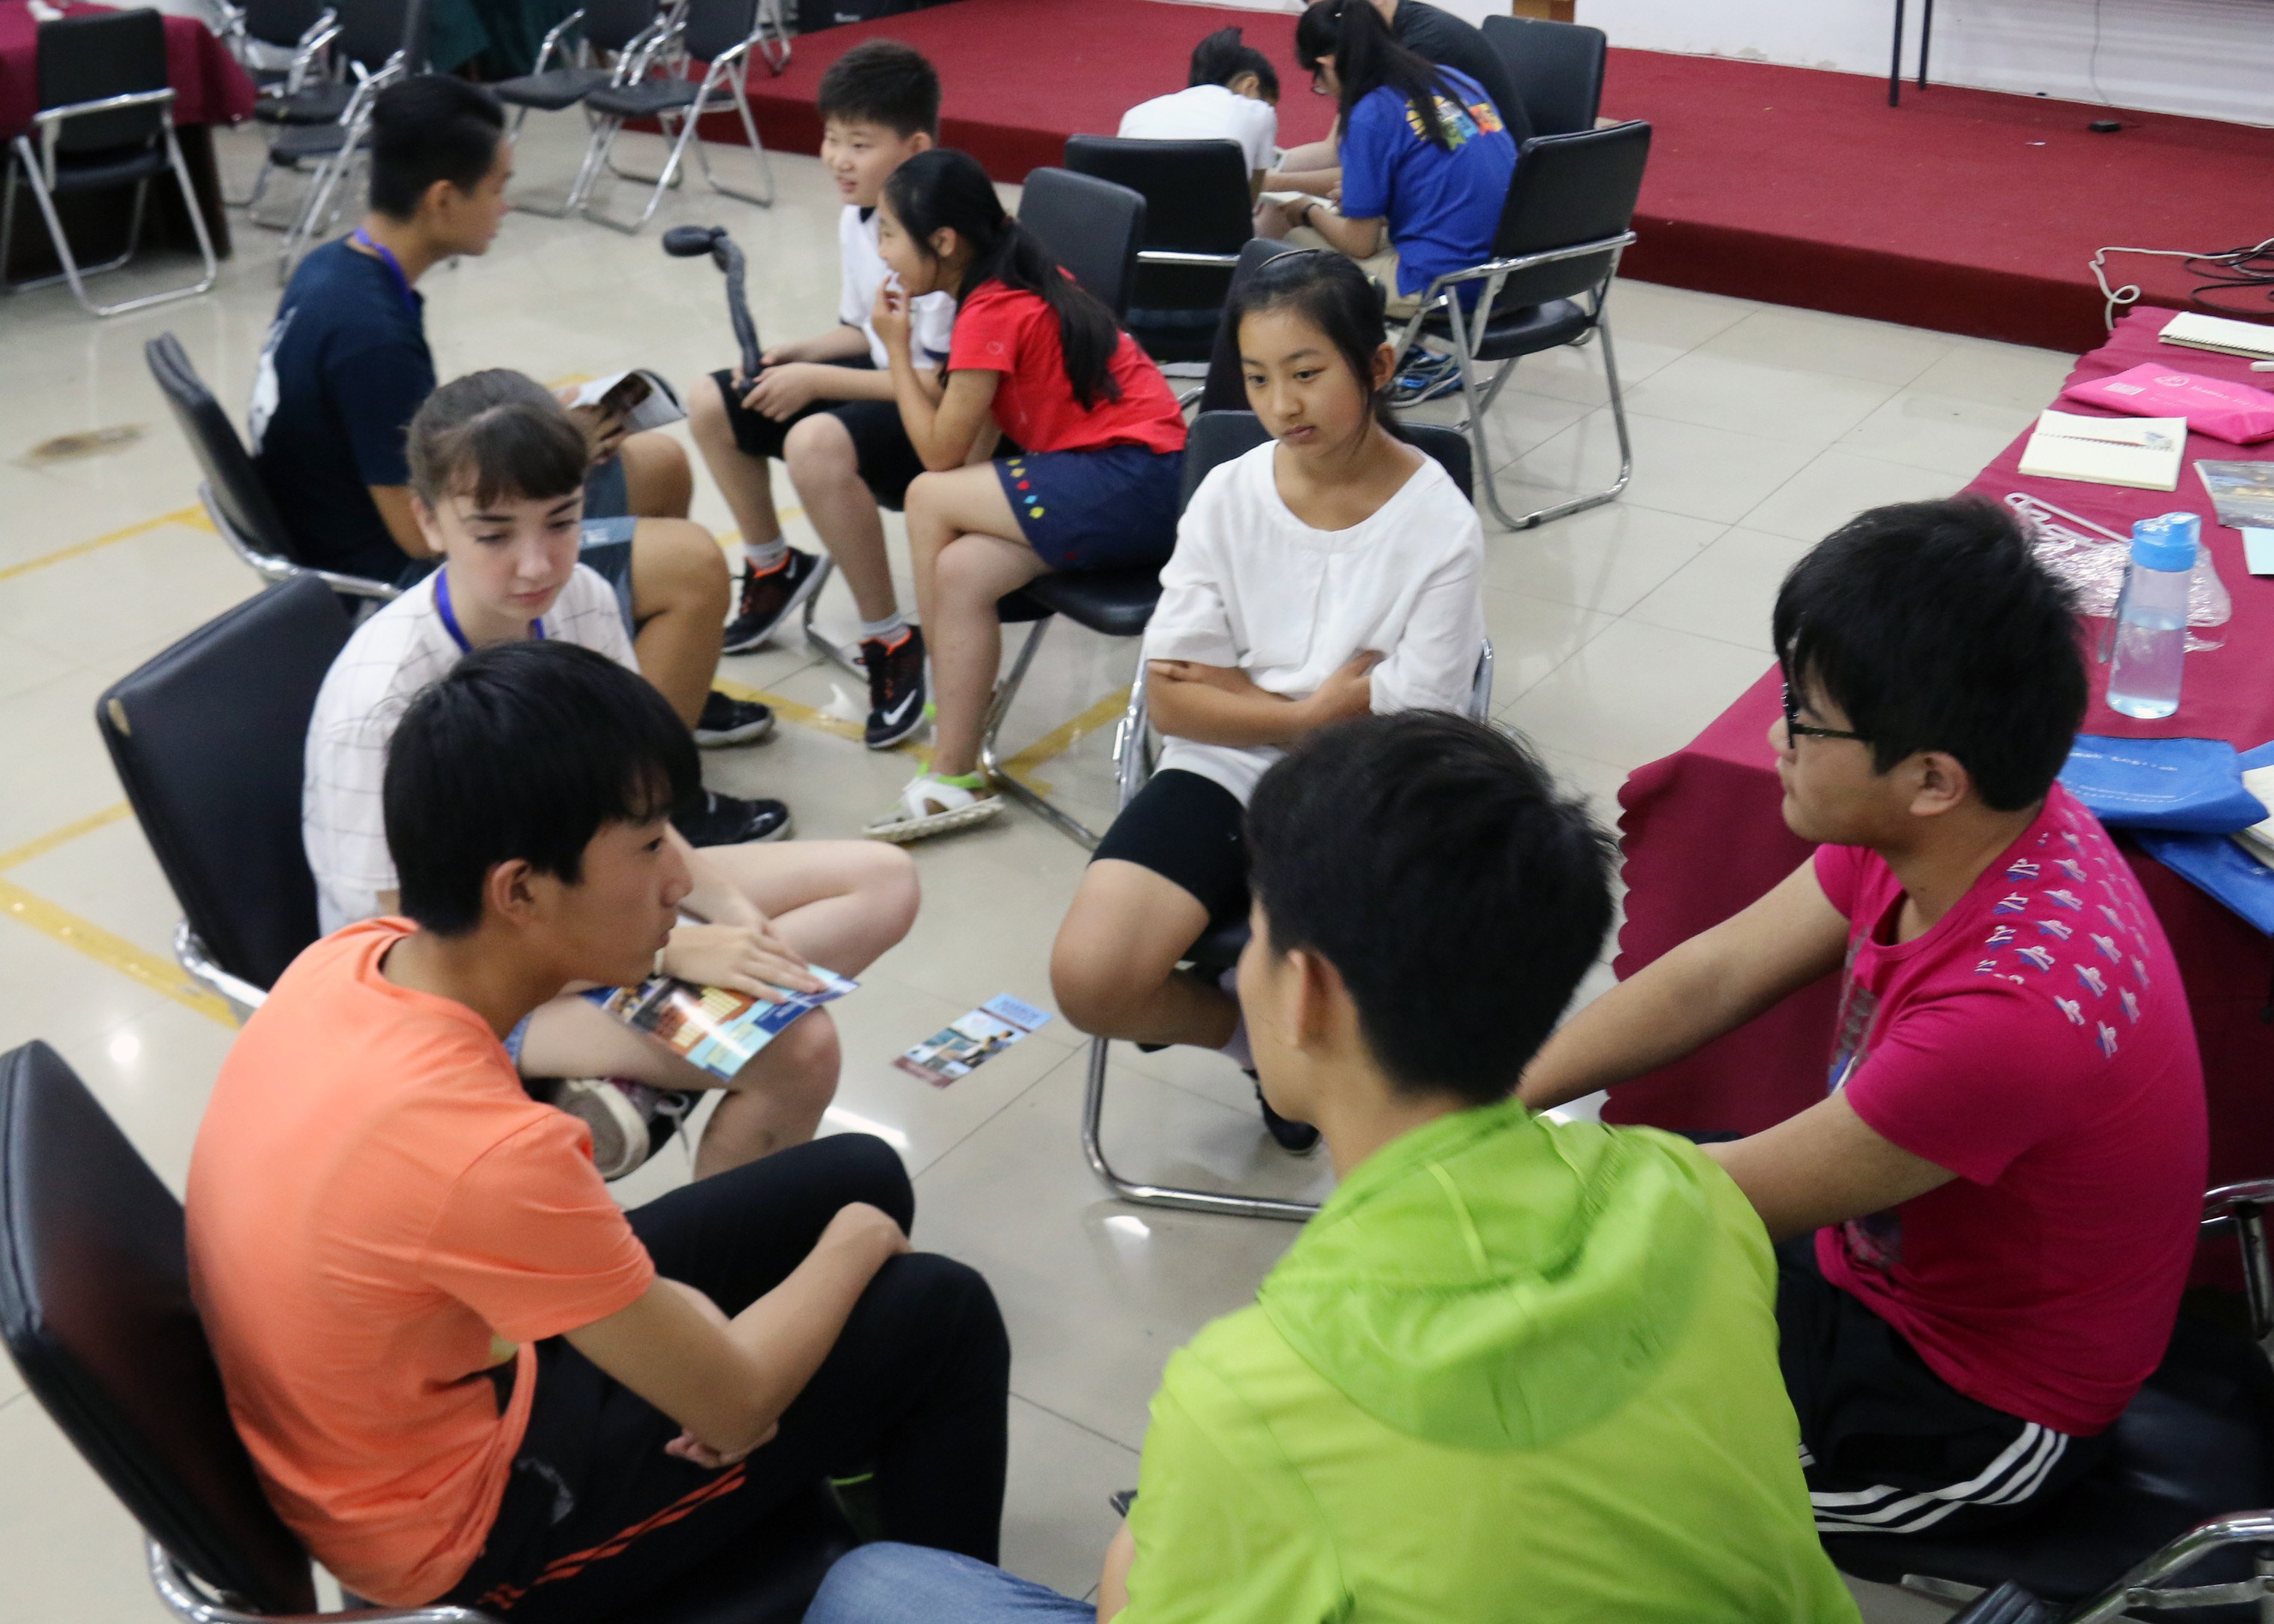 High School students learn conversational english